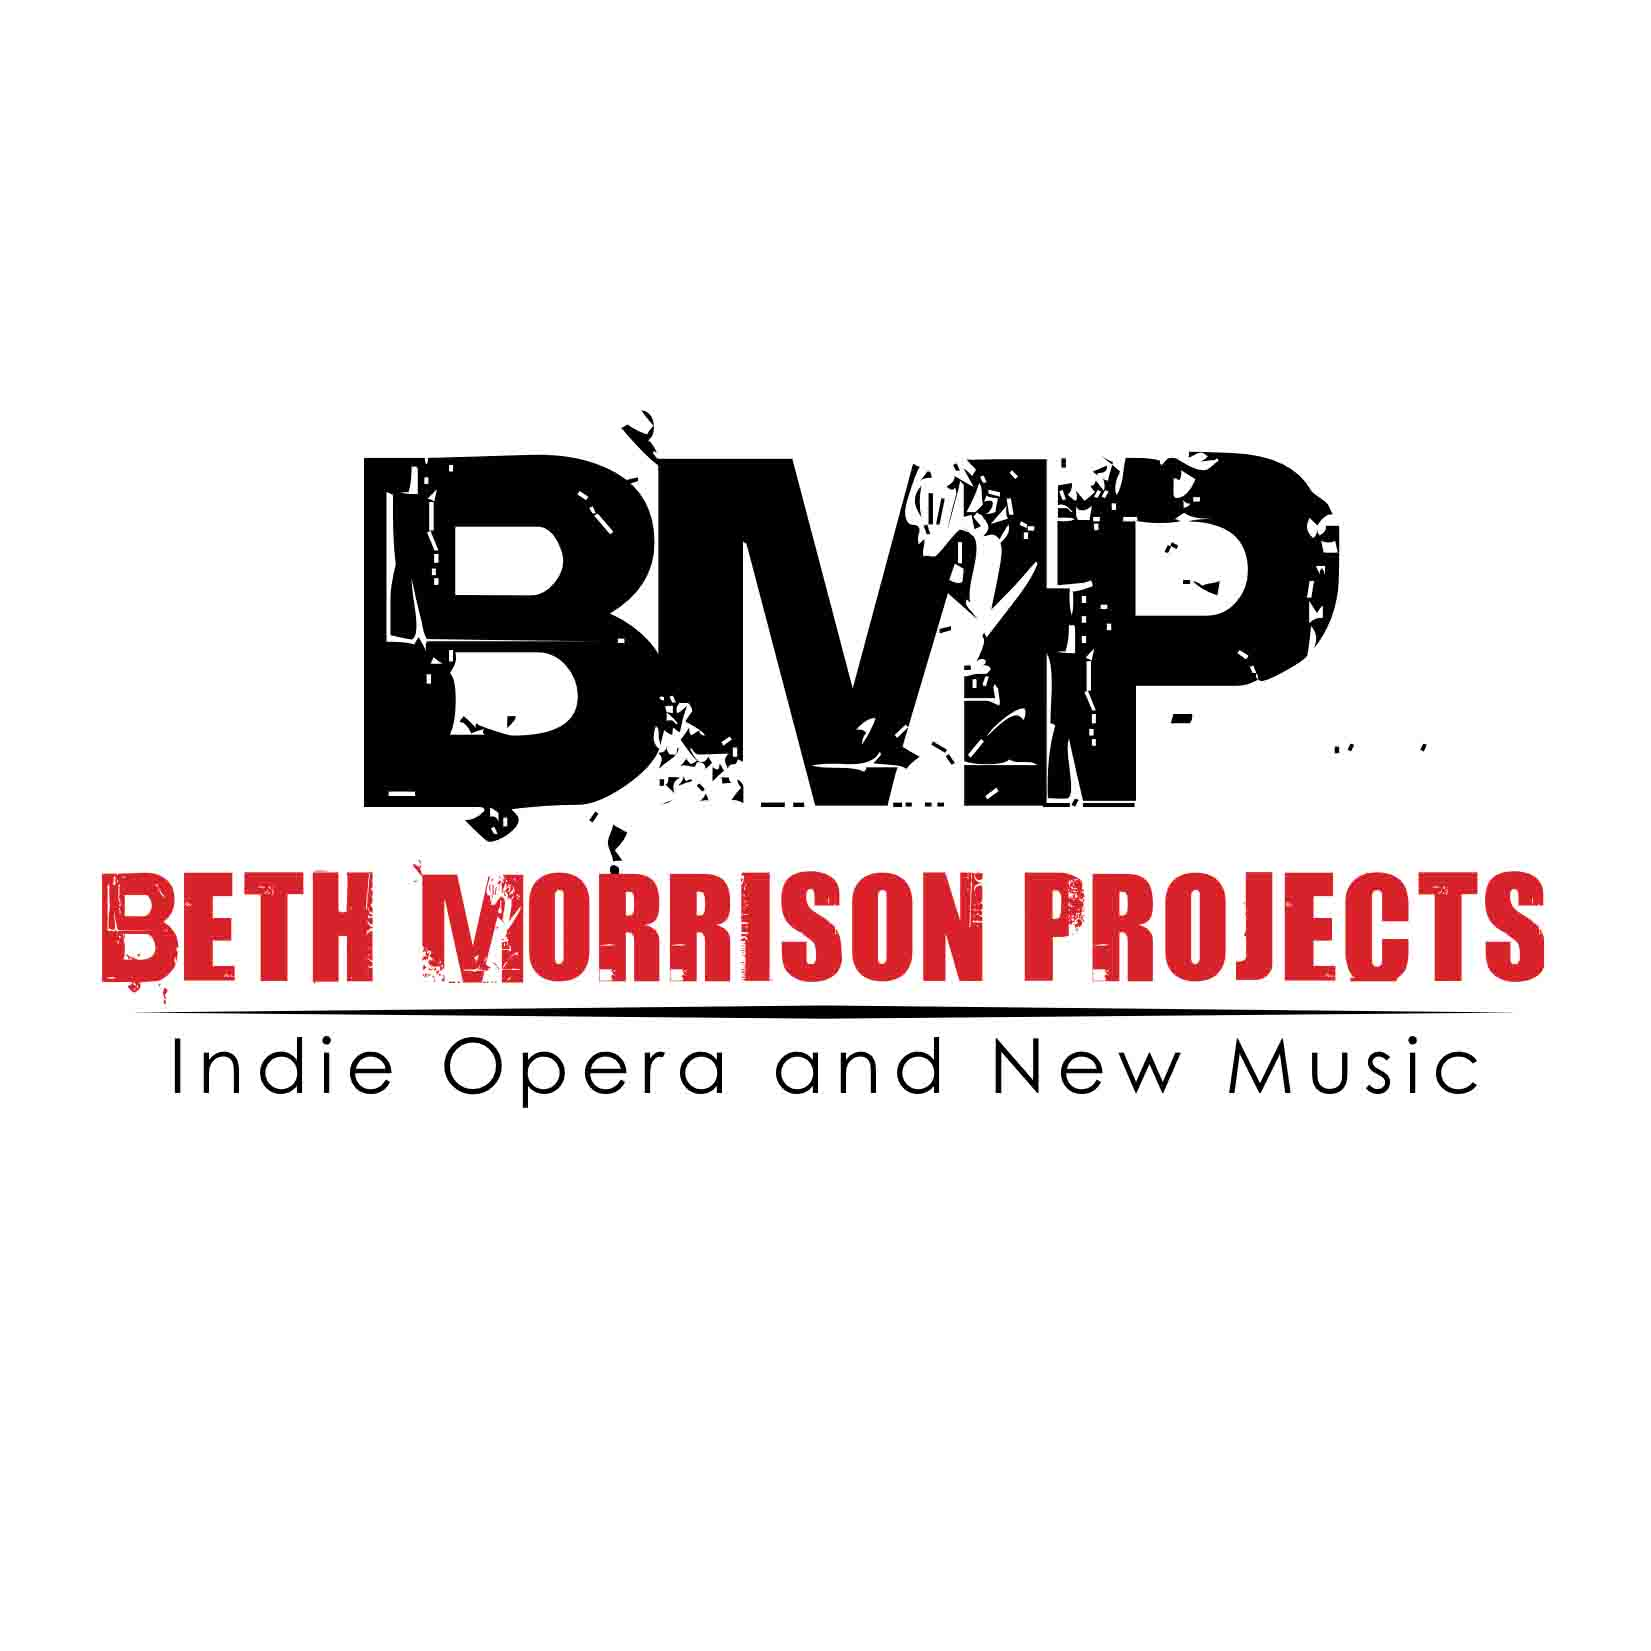 Beth Morrison Projects